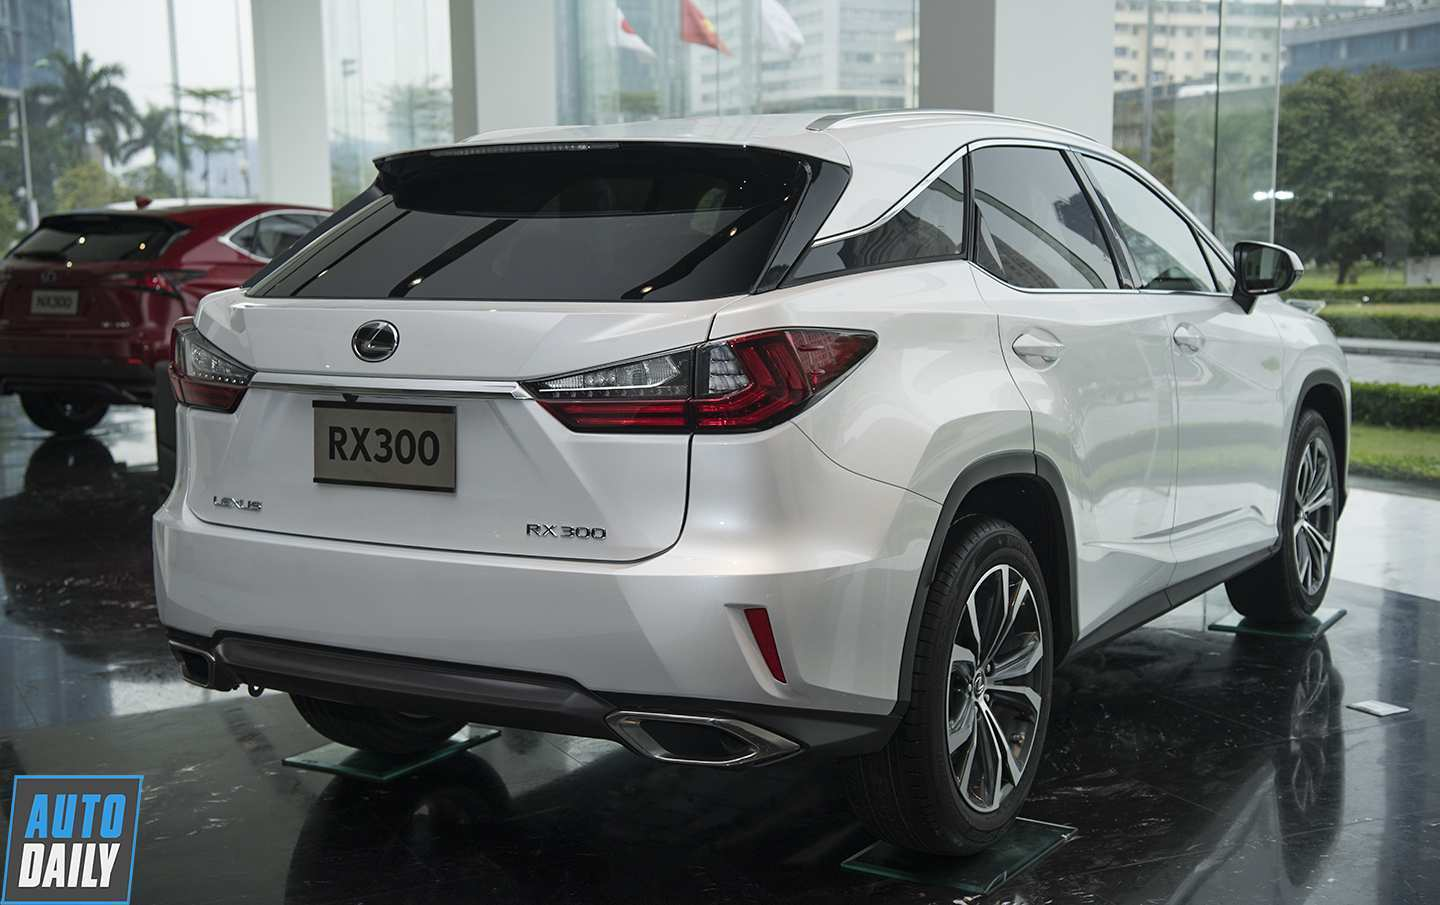 91 The Rx300 Lexus 2019 Review And Release Date